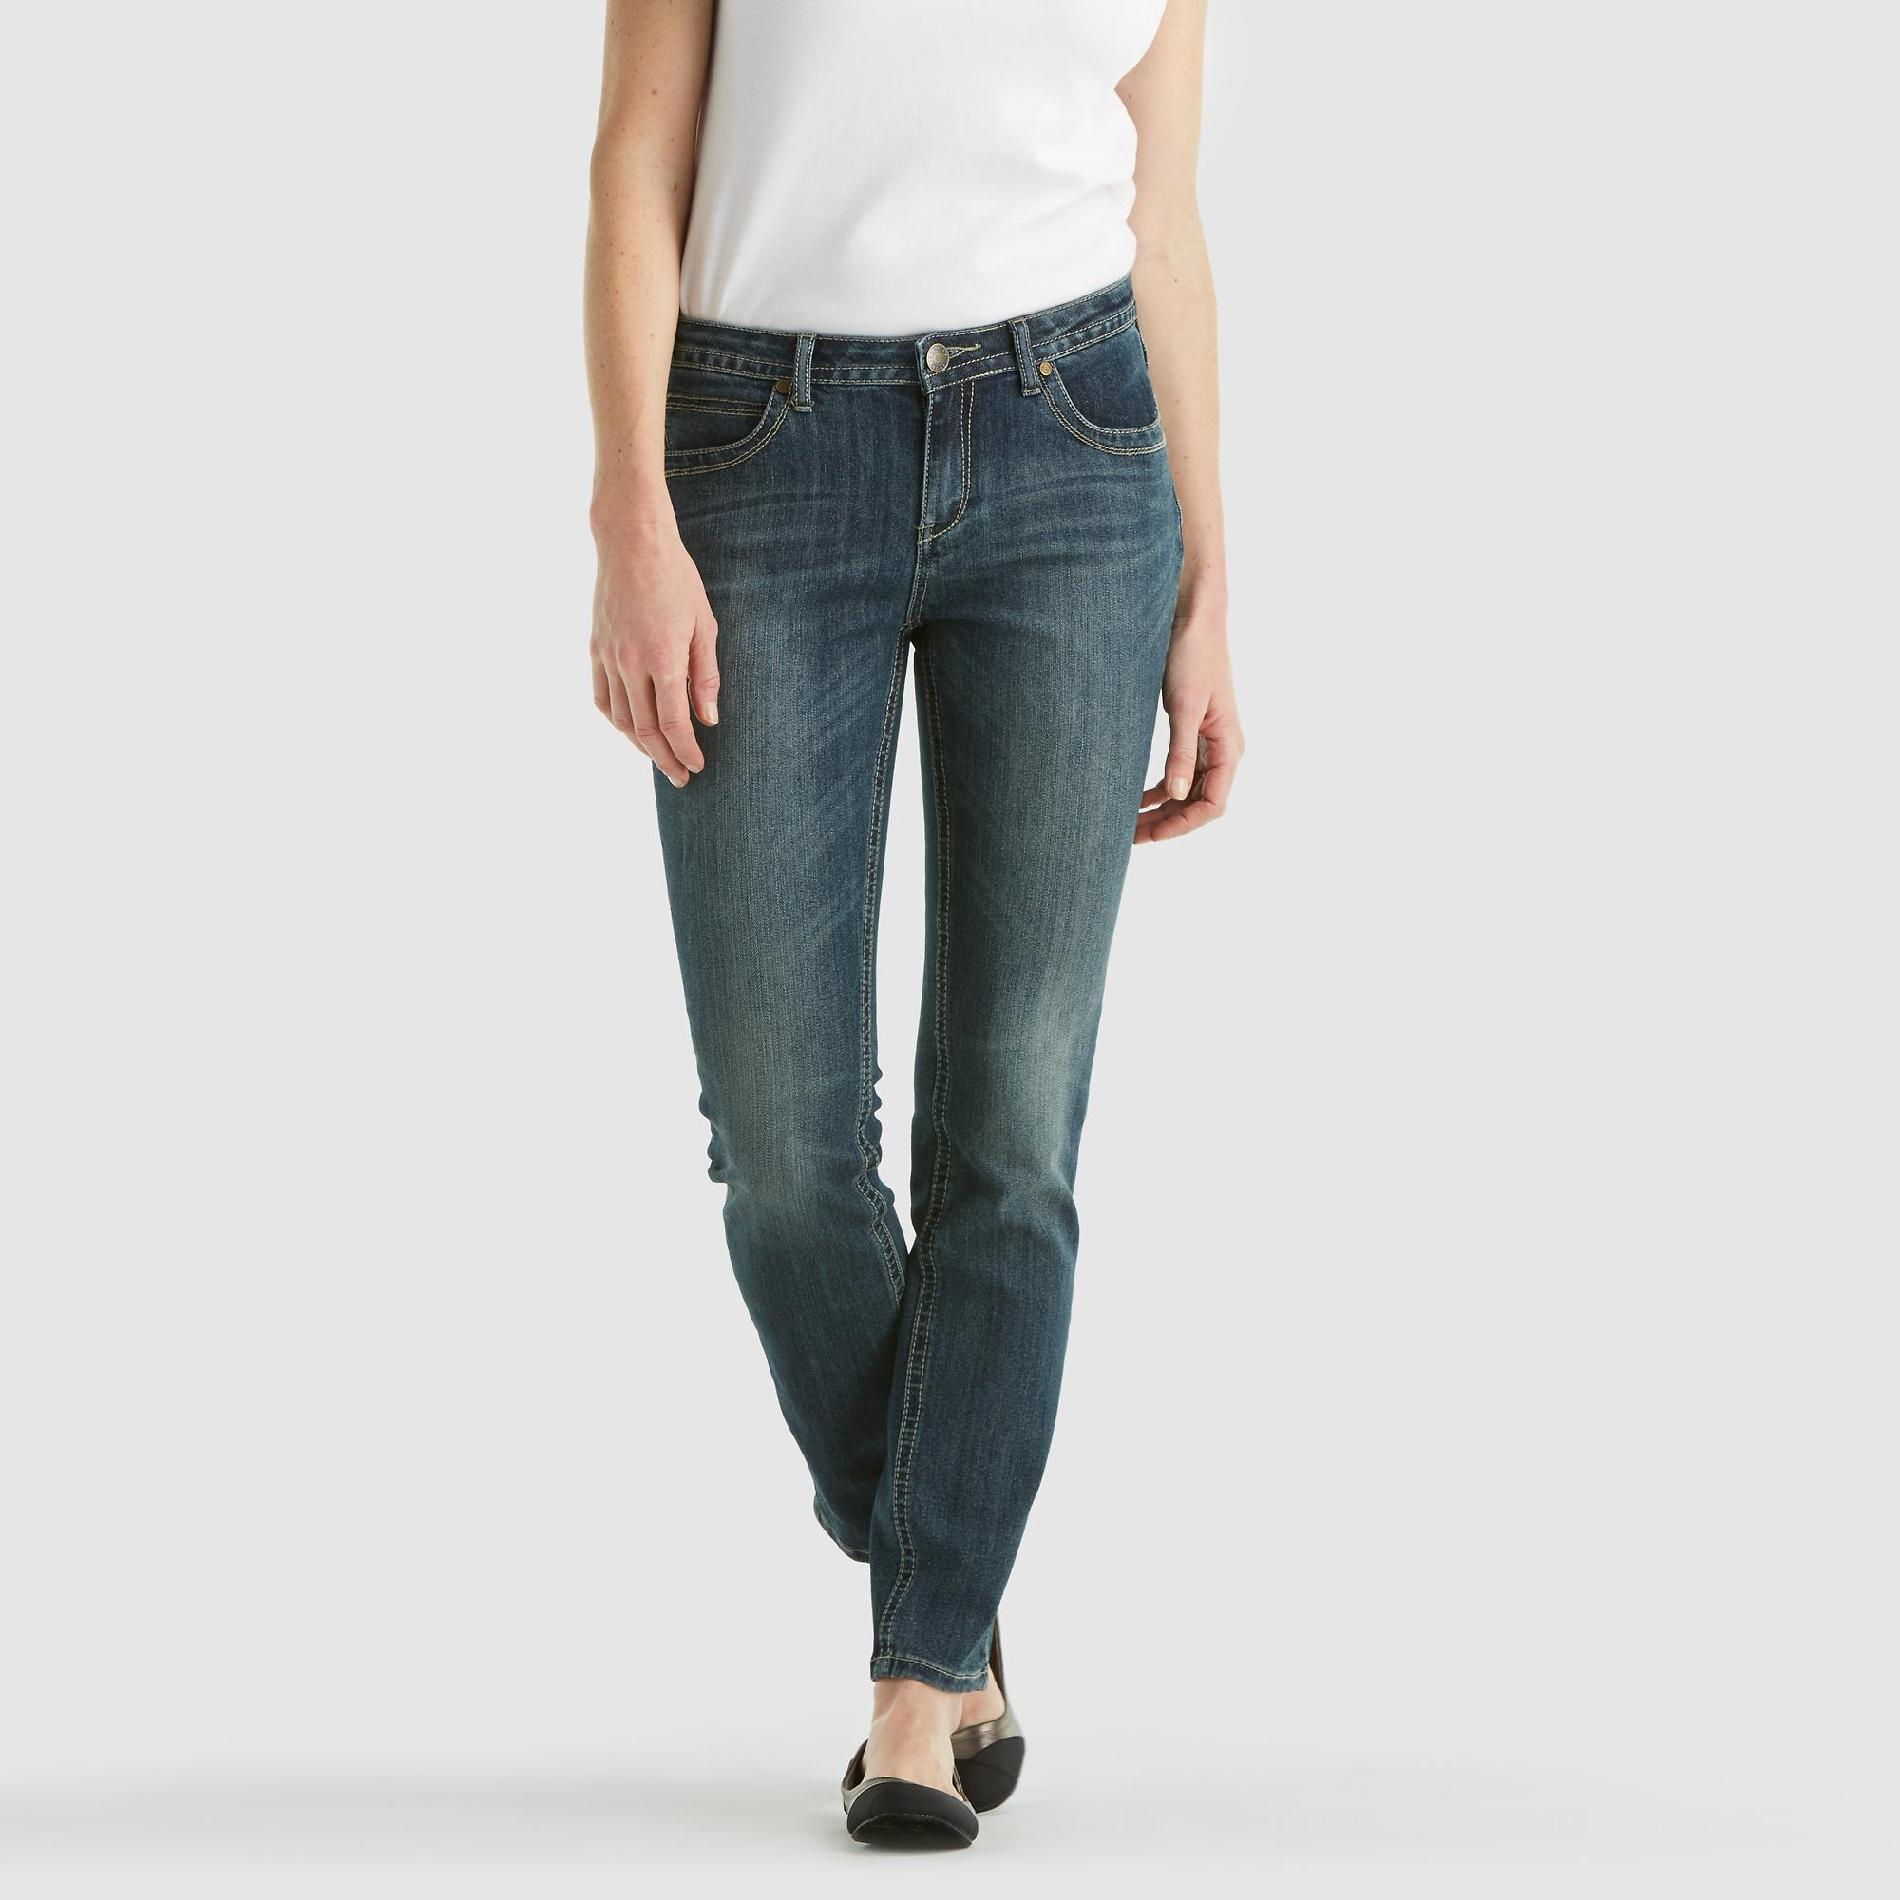 Canyon River Blues Women's Curvy Fit Skinny Jeans at Sears.com